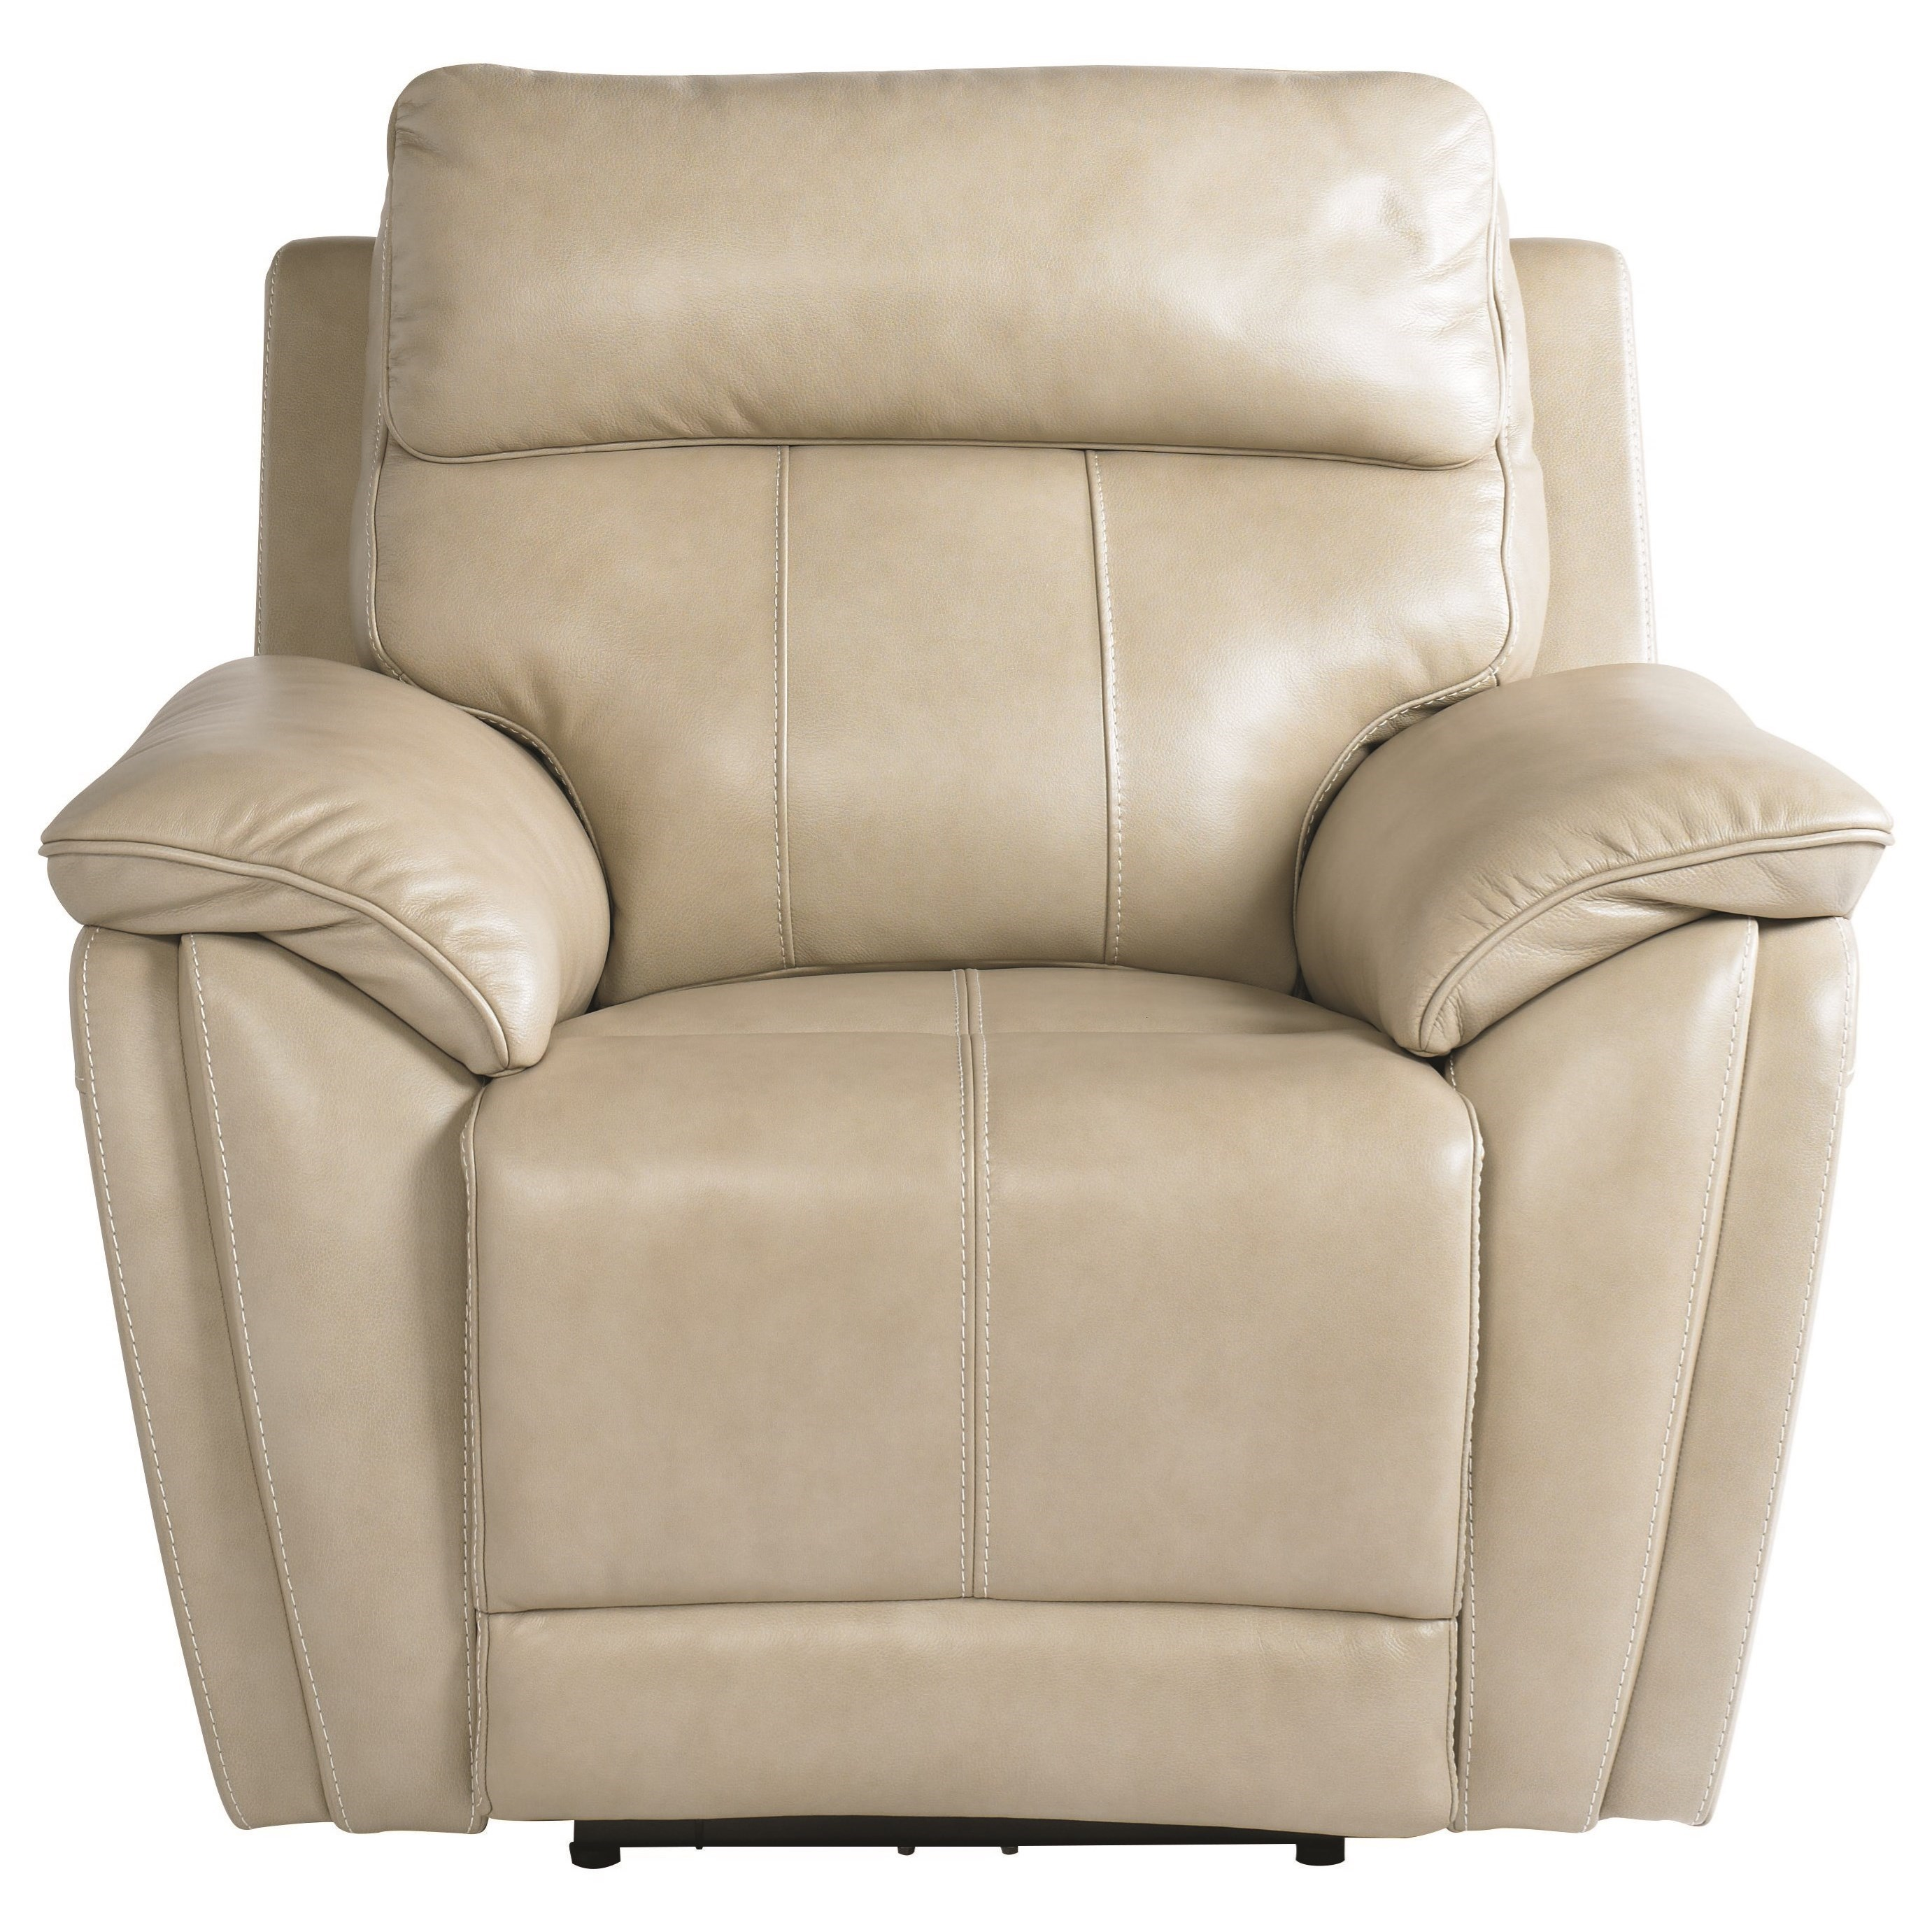 Club Level - Levitate Wallsaver Recliner by Bassett at Fisher Home Furnishings